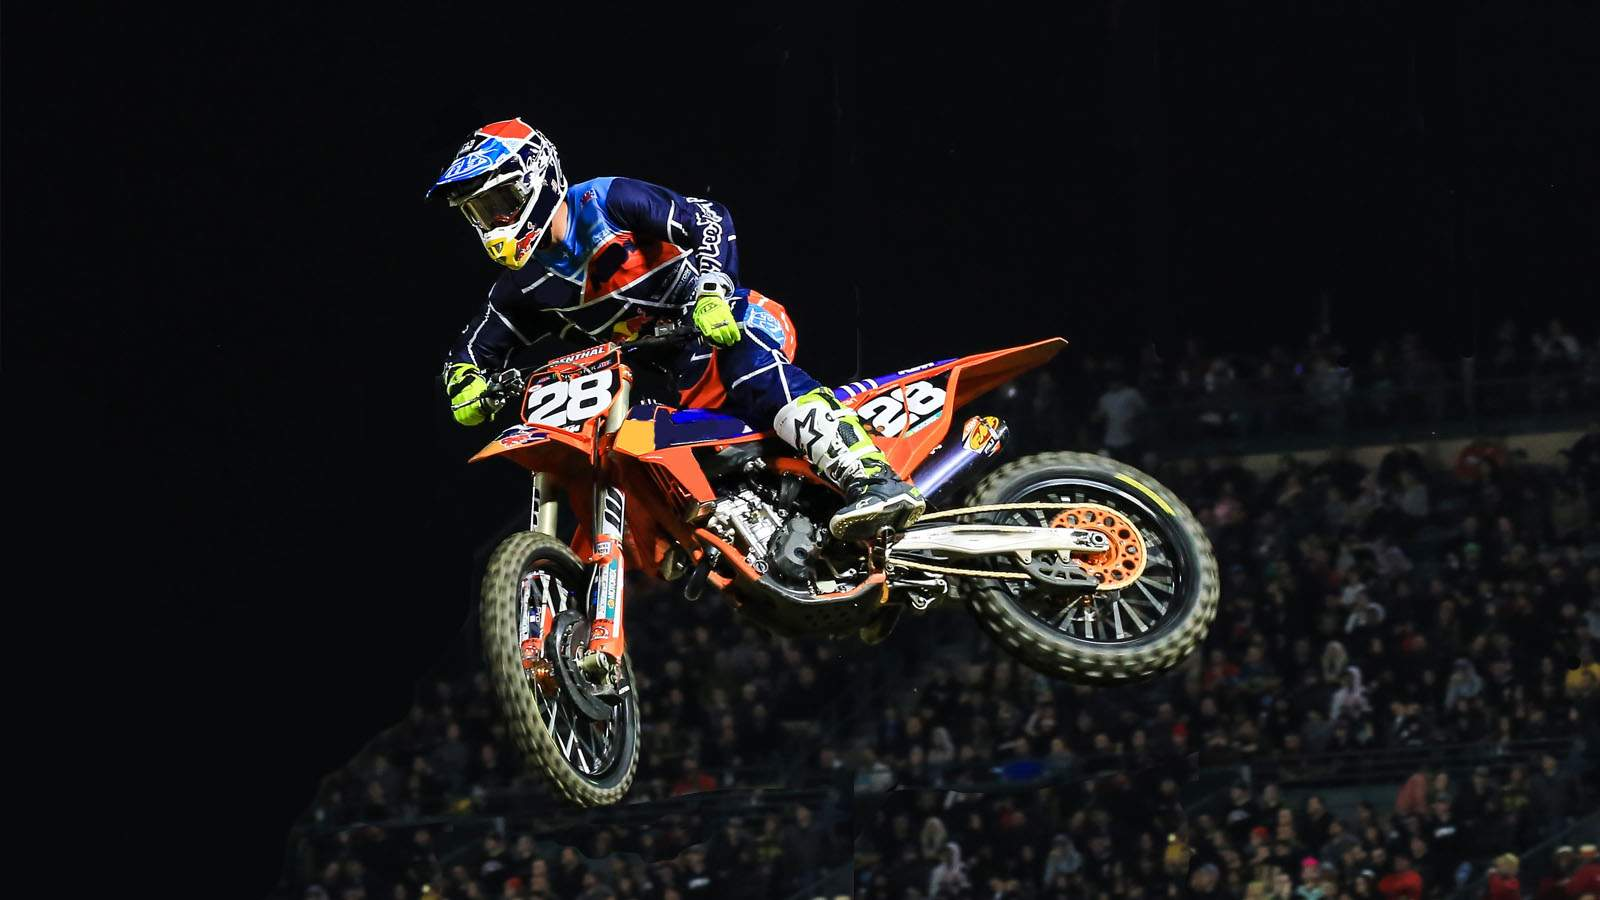 Monster Energy AMA Supercross (Reduced Capacity, Social Distancing)